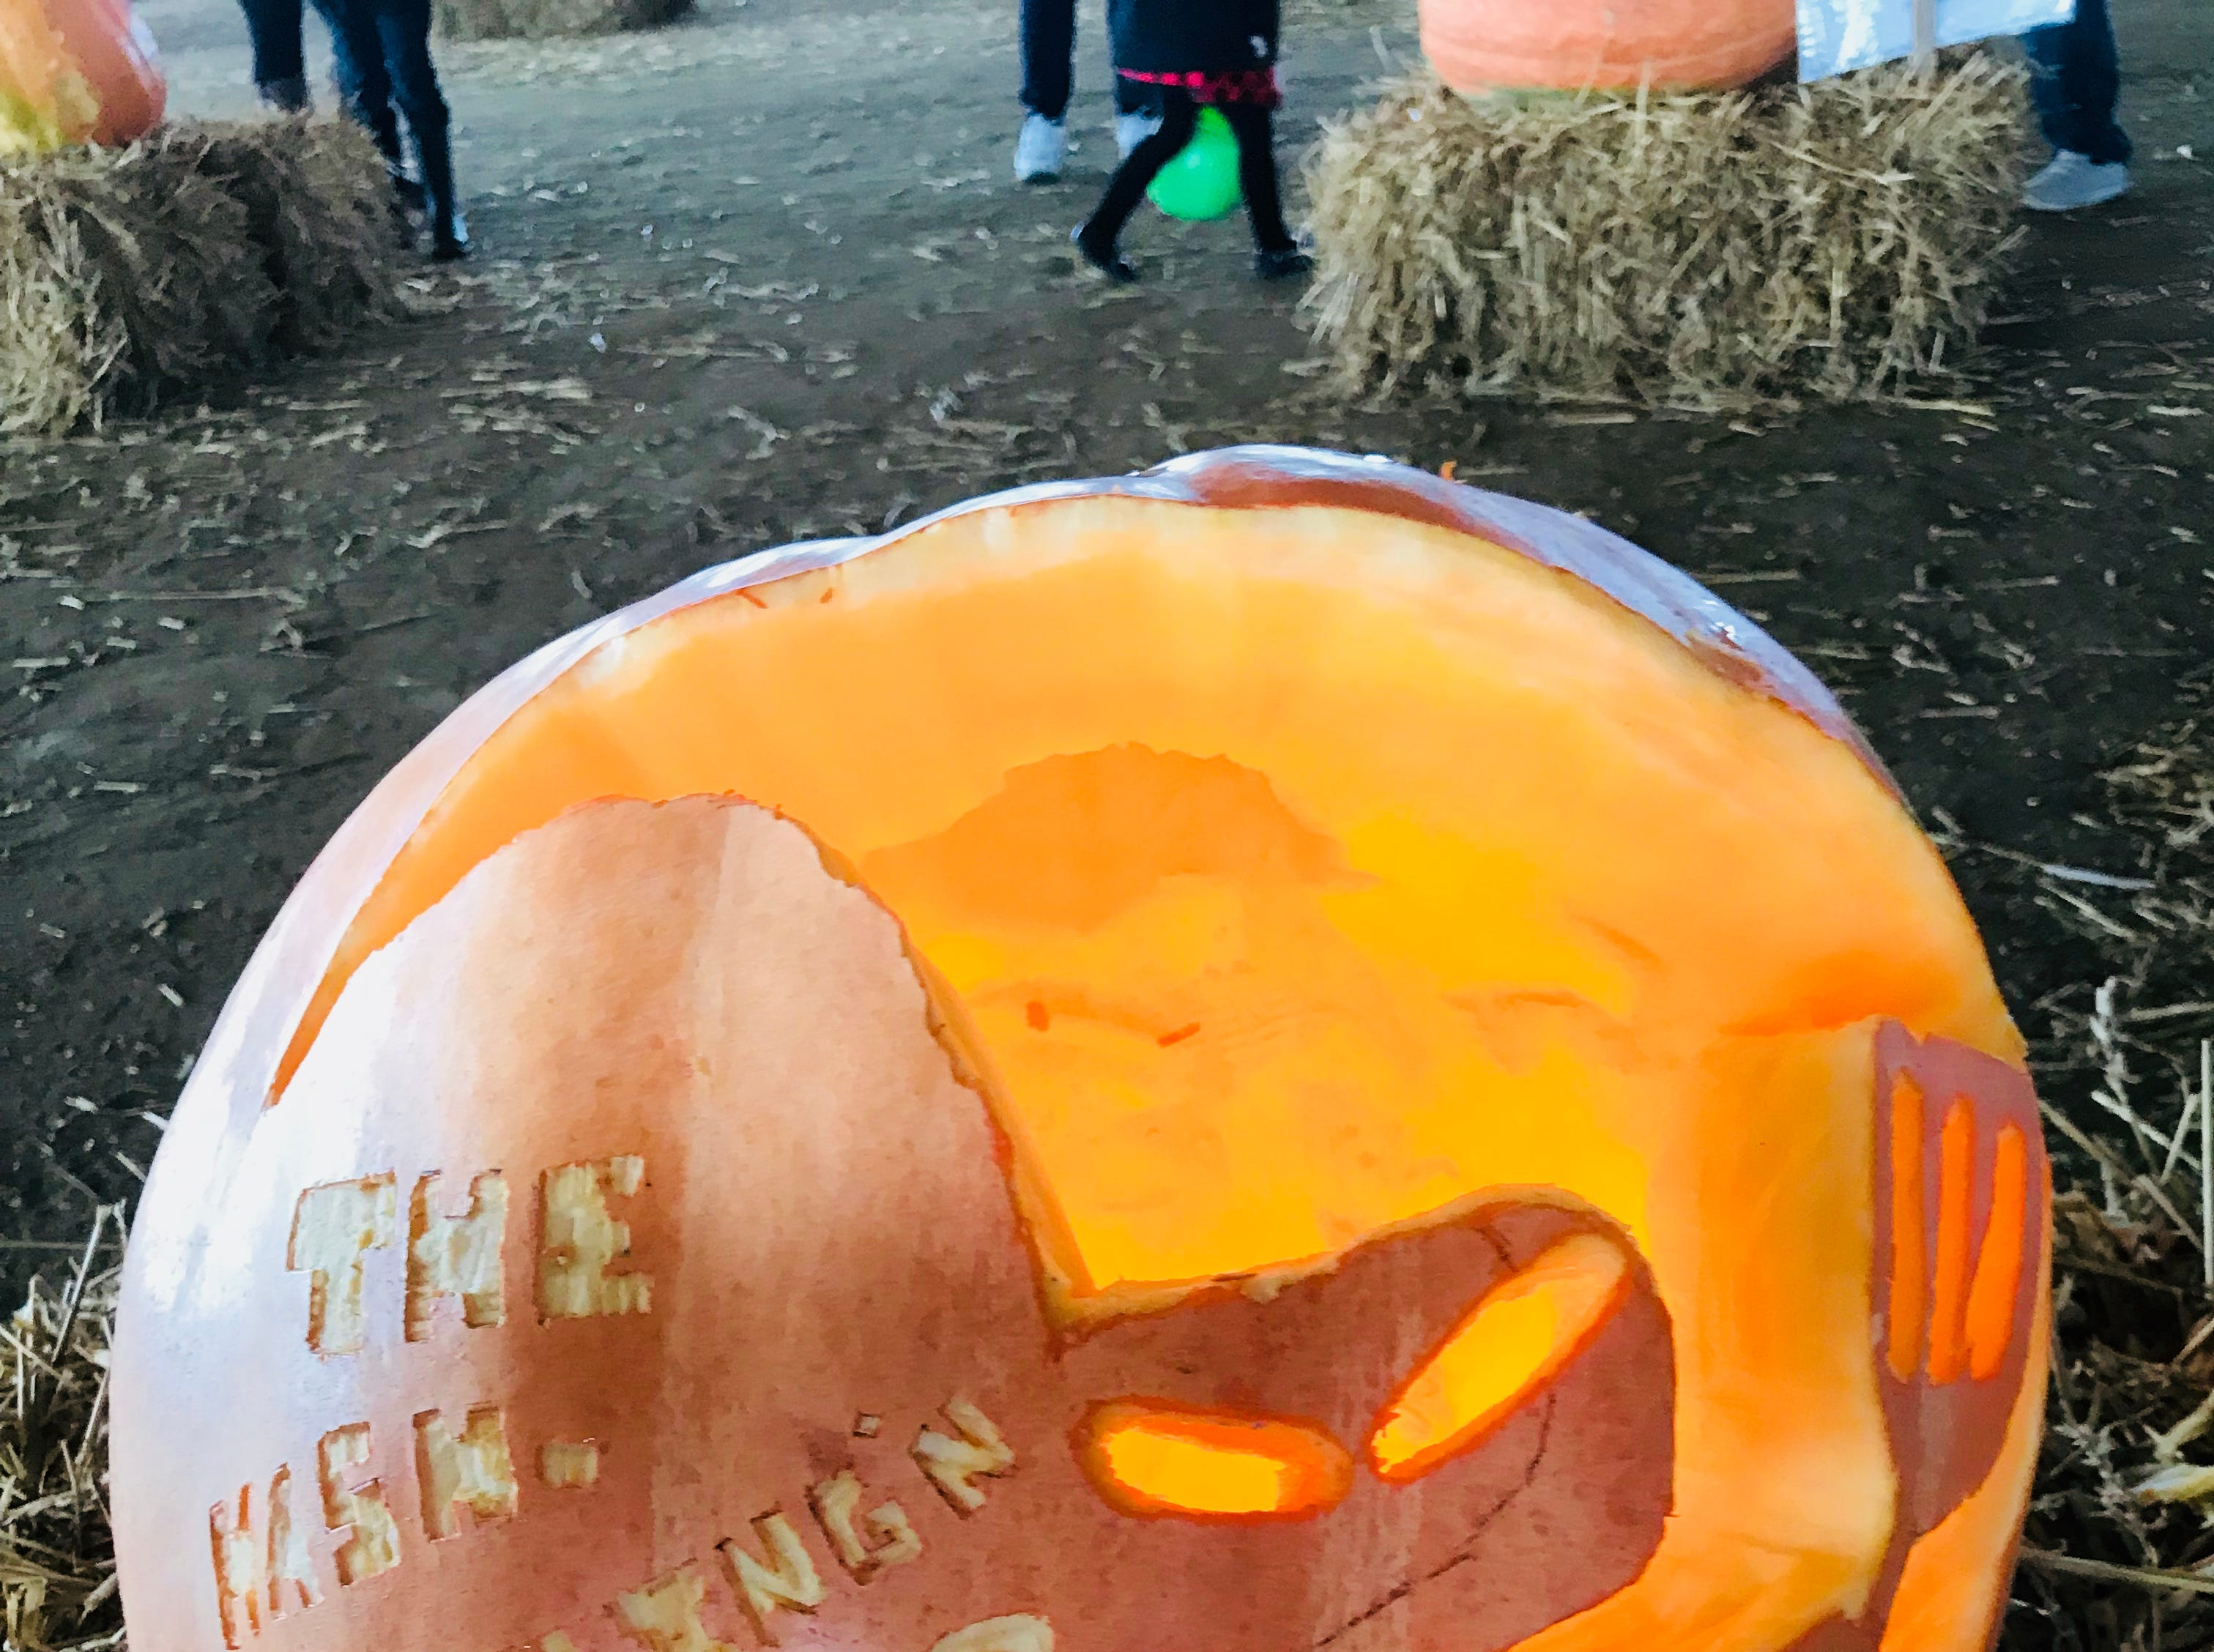 CJ Cain created this pumpkin featuring the villain from an episode of 'Spongebob Squarepants' at the first Great Delaware Pumpkin Carve.